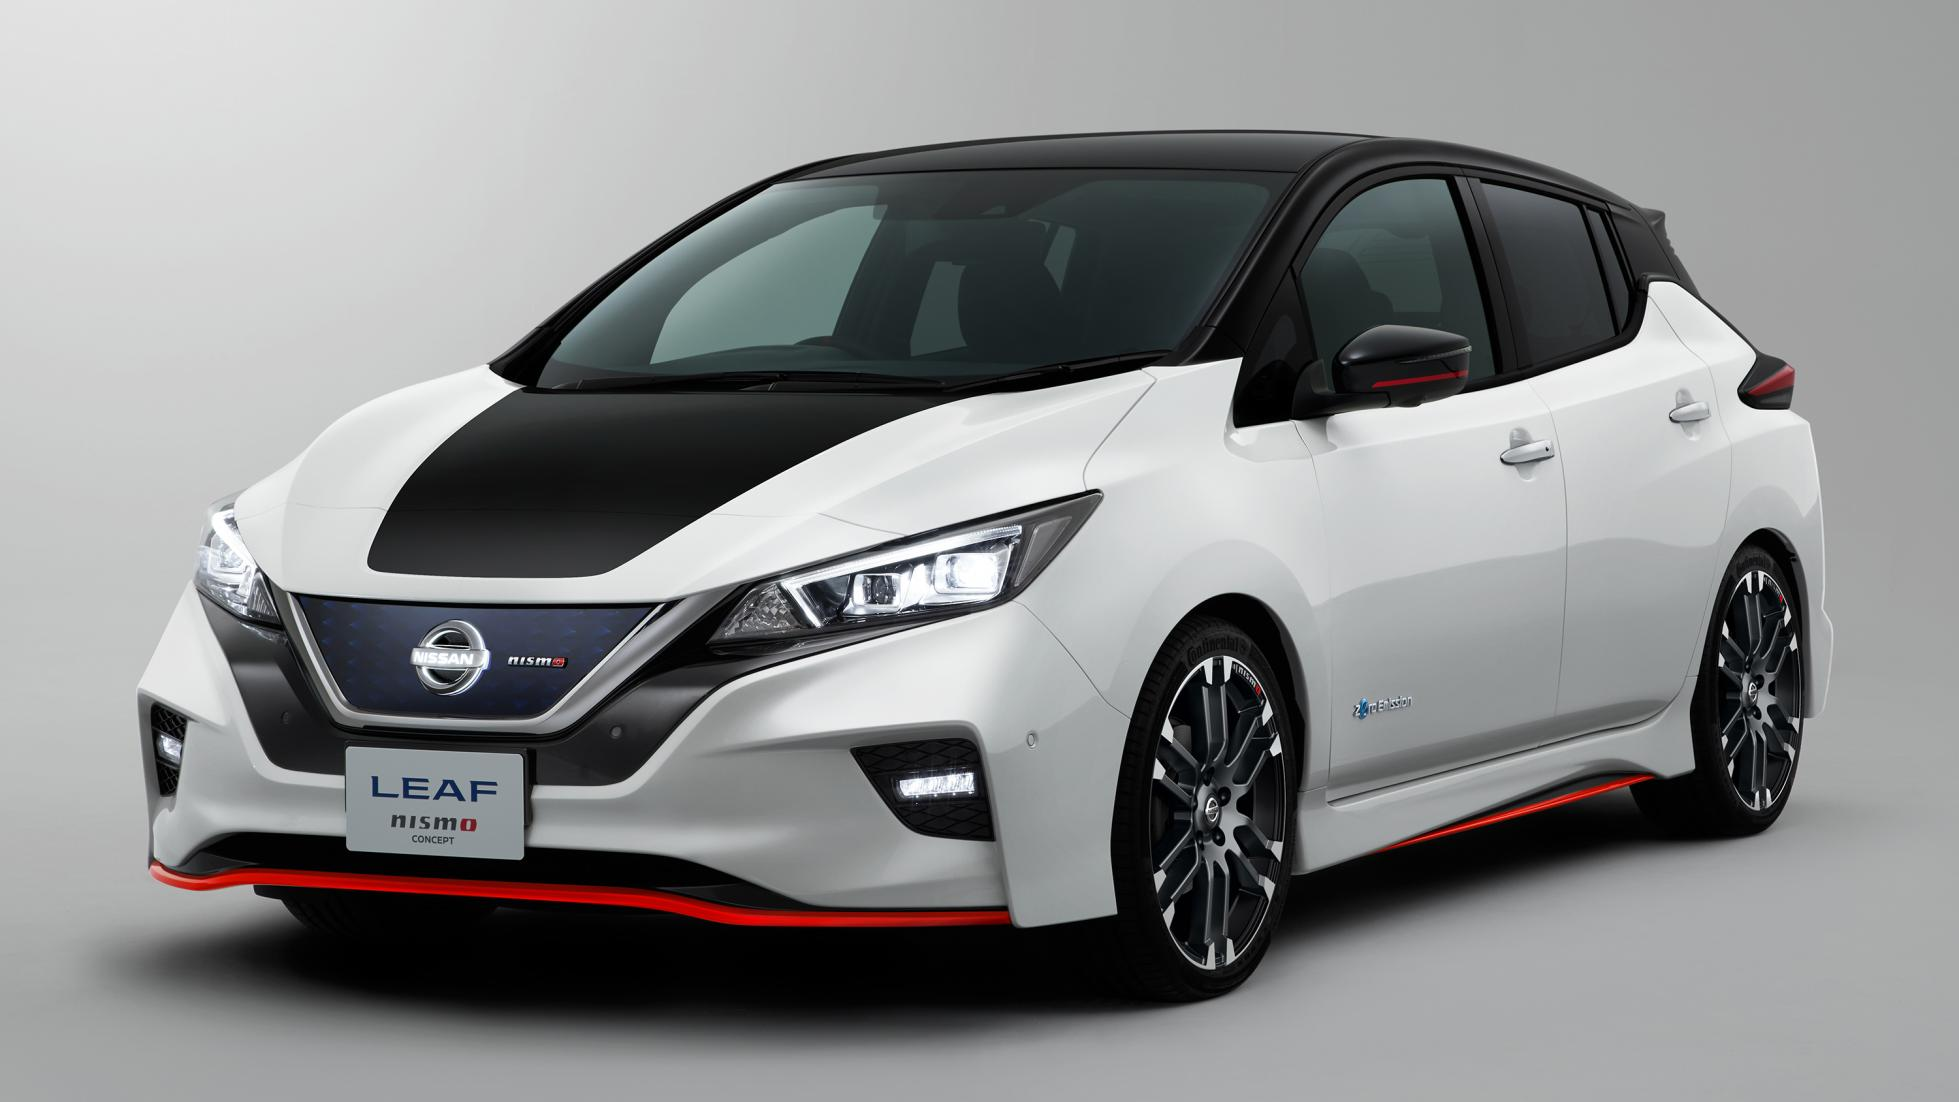 Nissan Leaf NISMO Concept revealed, to debut at 2017 Tokyo Motor Show